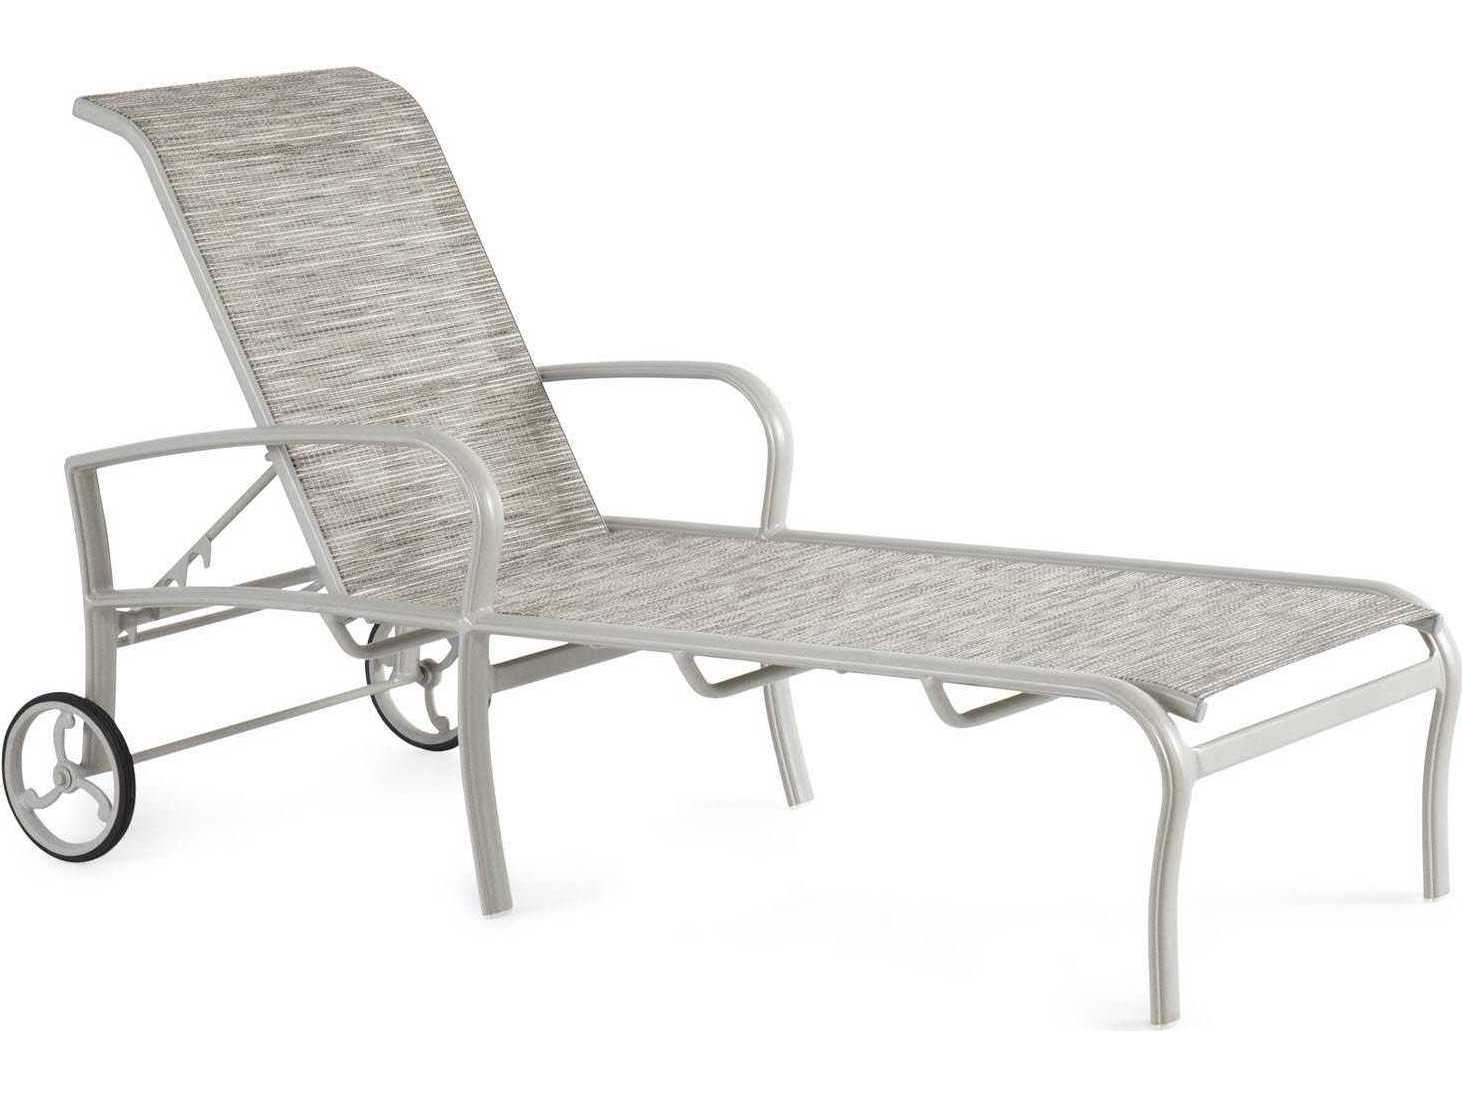 Winston savoy sling aluminum arm chaise lounge m54009 for Aluminum sling chaise lounge